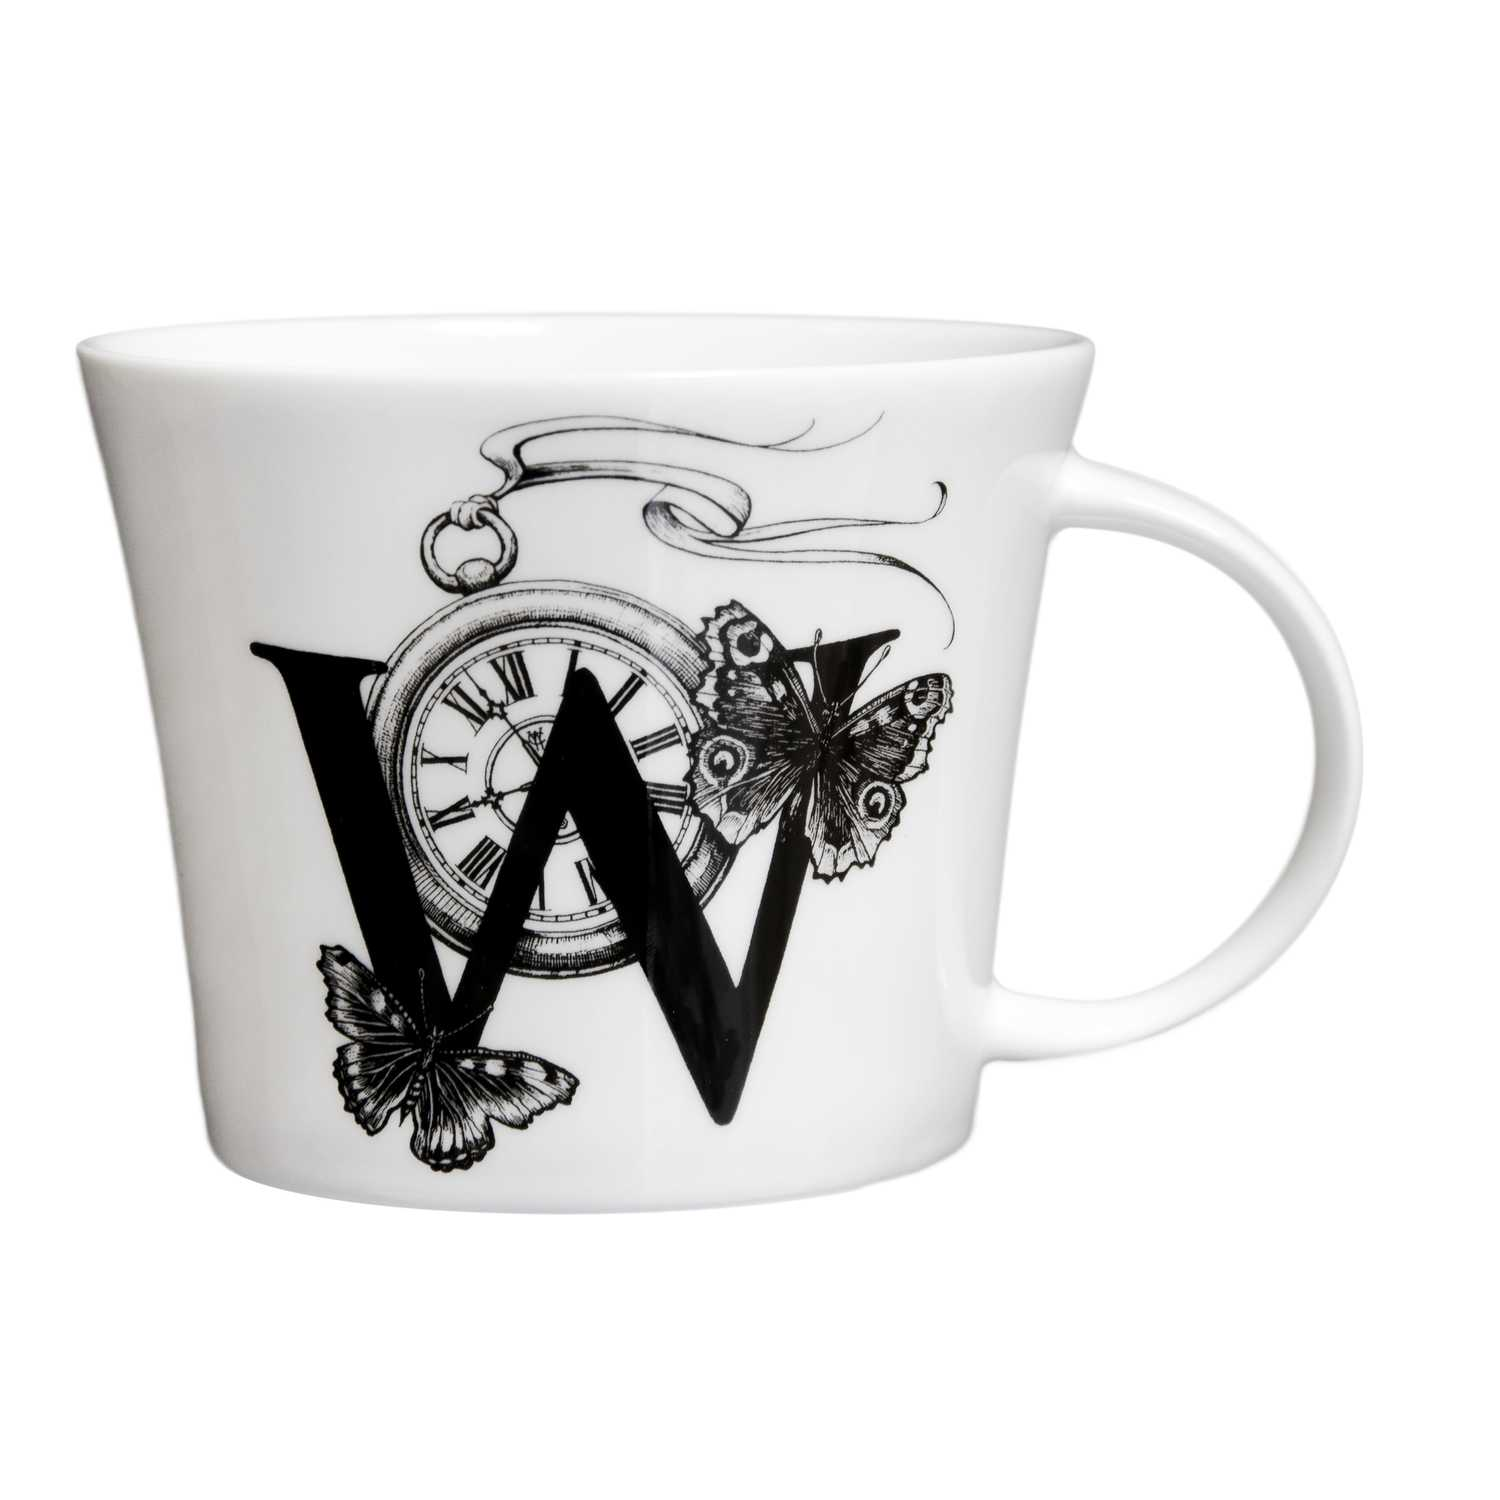 W - Winged Watch Mighty Mug-0